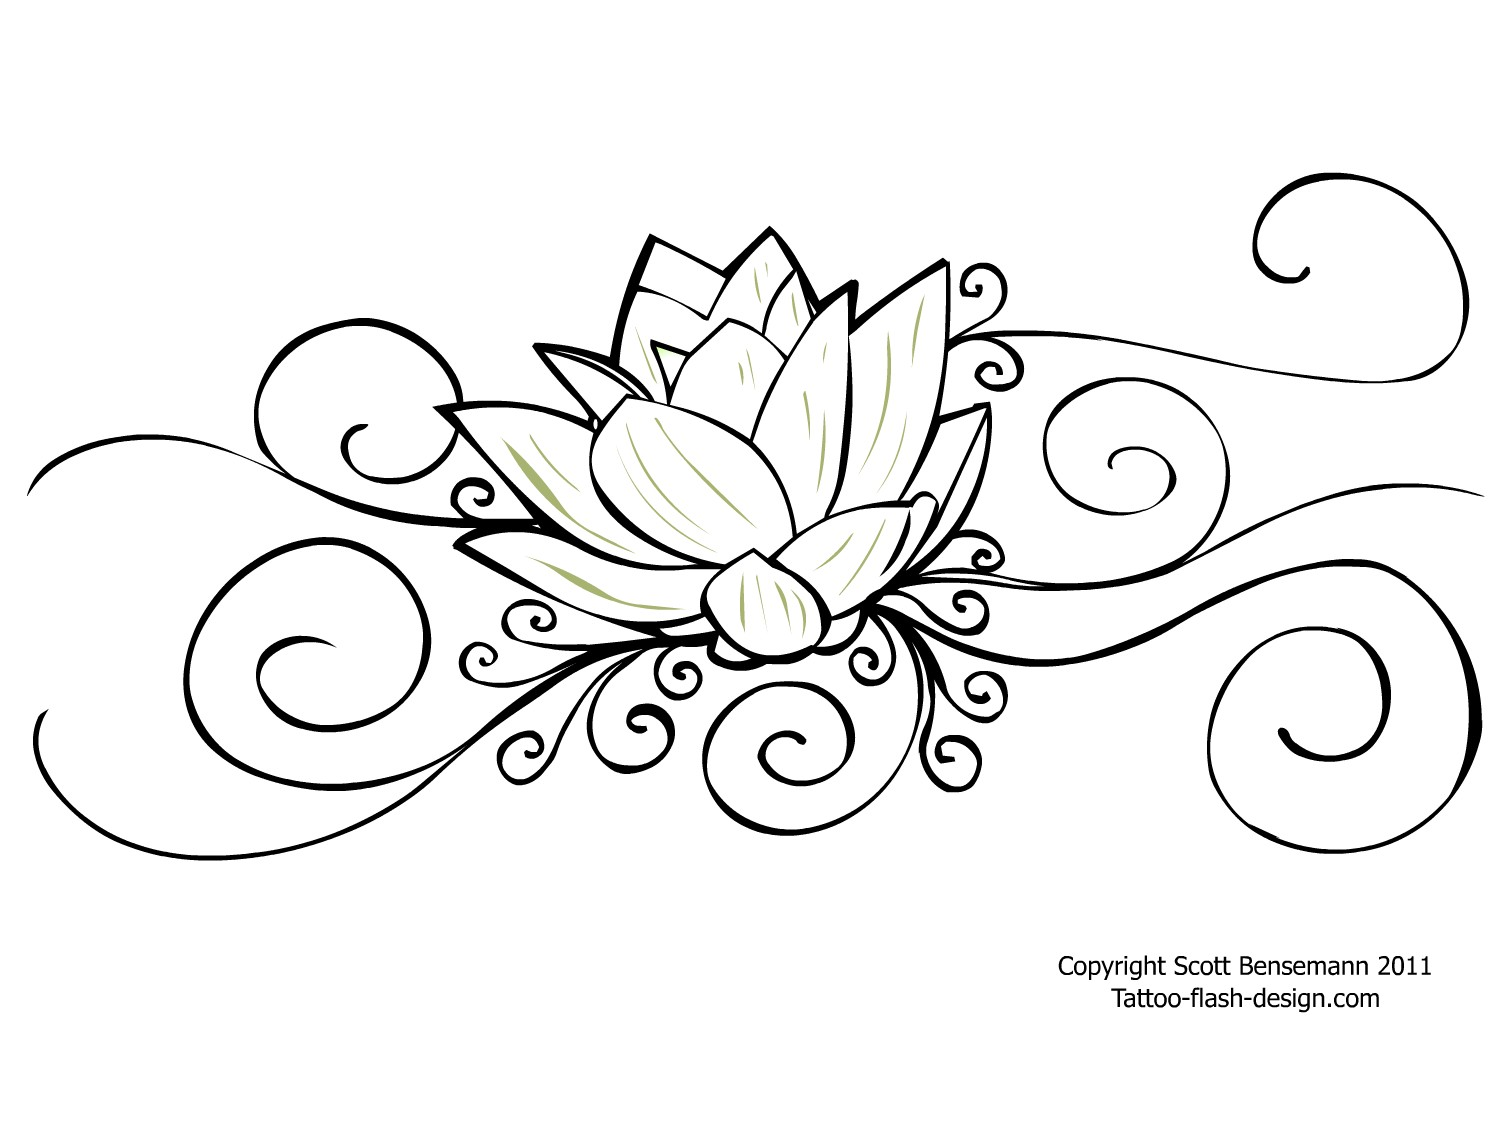 Outline flower tattoo design awesome outline flower tattoo design mightylinksfo